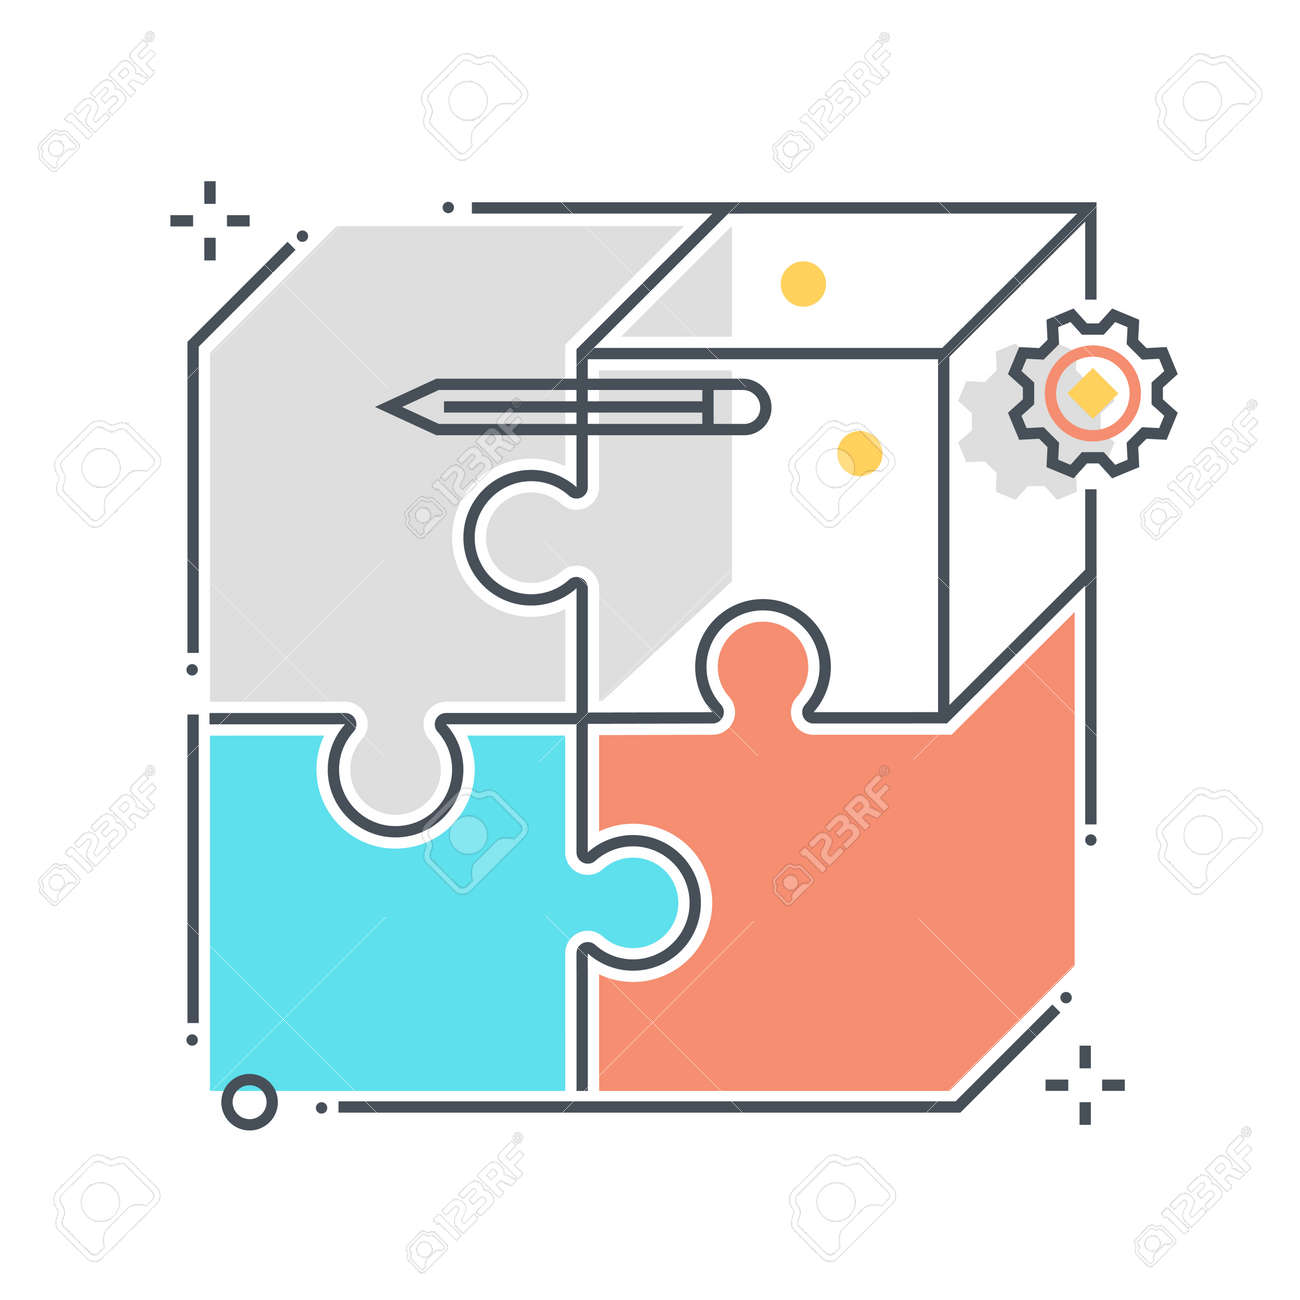 Puzzle related color line vector icon, illustration. The icon is about business market fit, jigsaw, solving, box. The composition is infinitely scalable. - 163698360